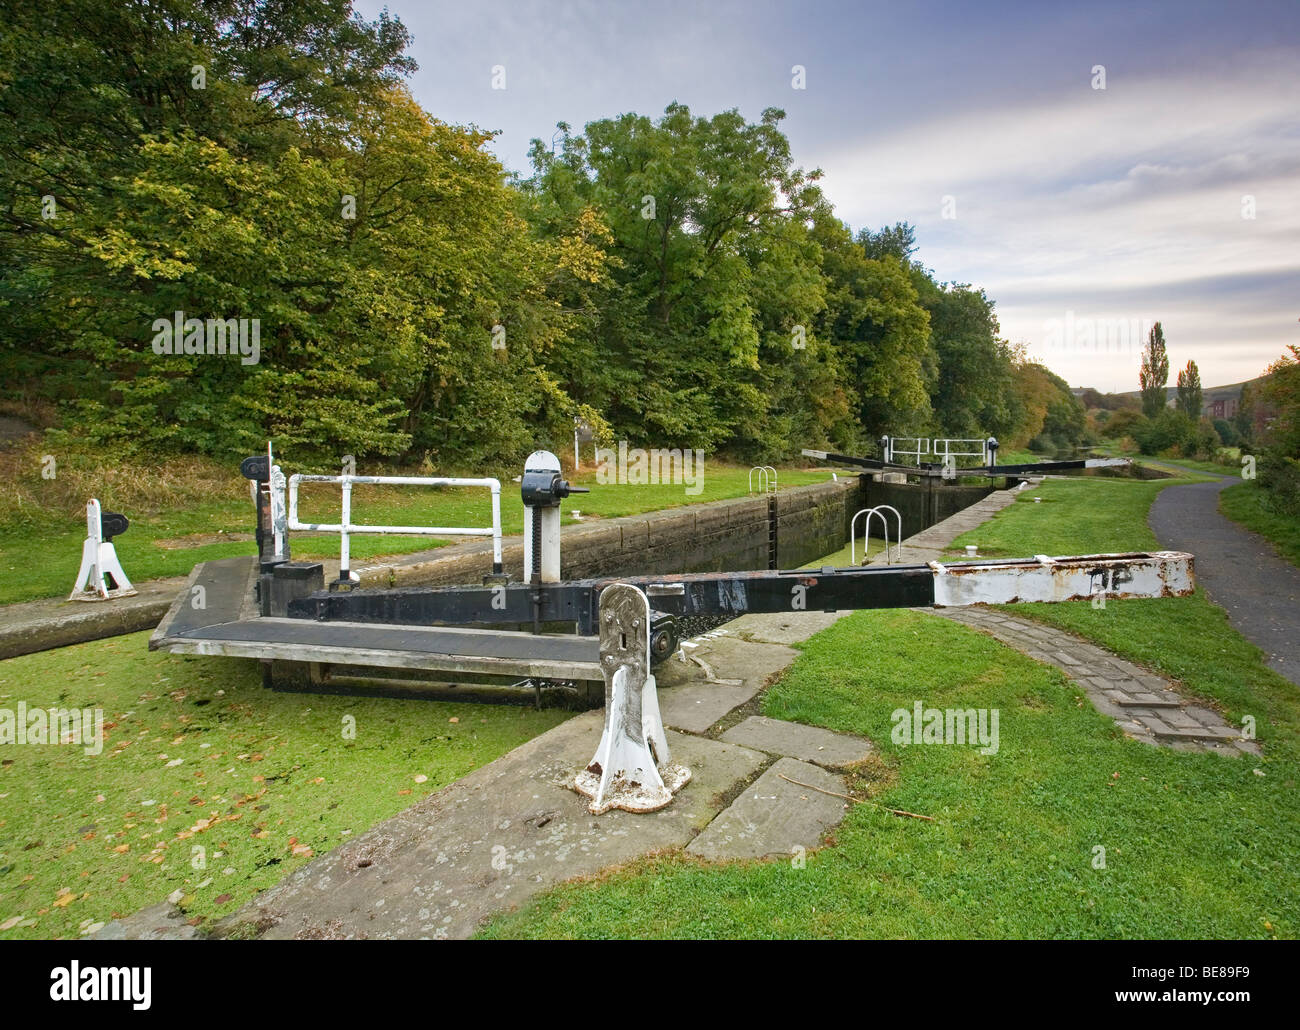 Lock Gates and Towpath on the Huddersfield Broad Canal at Bradley near Huddersfield, West Yorkshire, UK - Stock Image